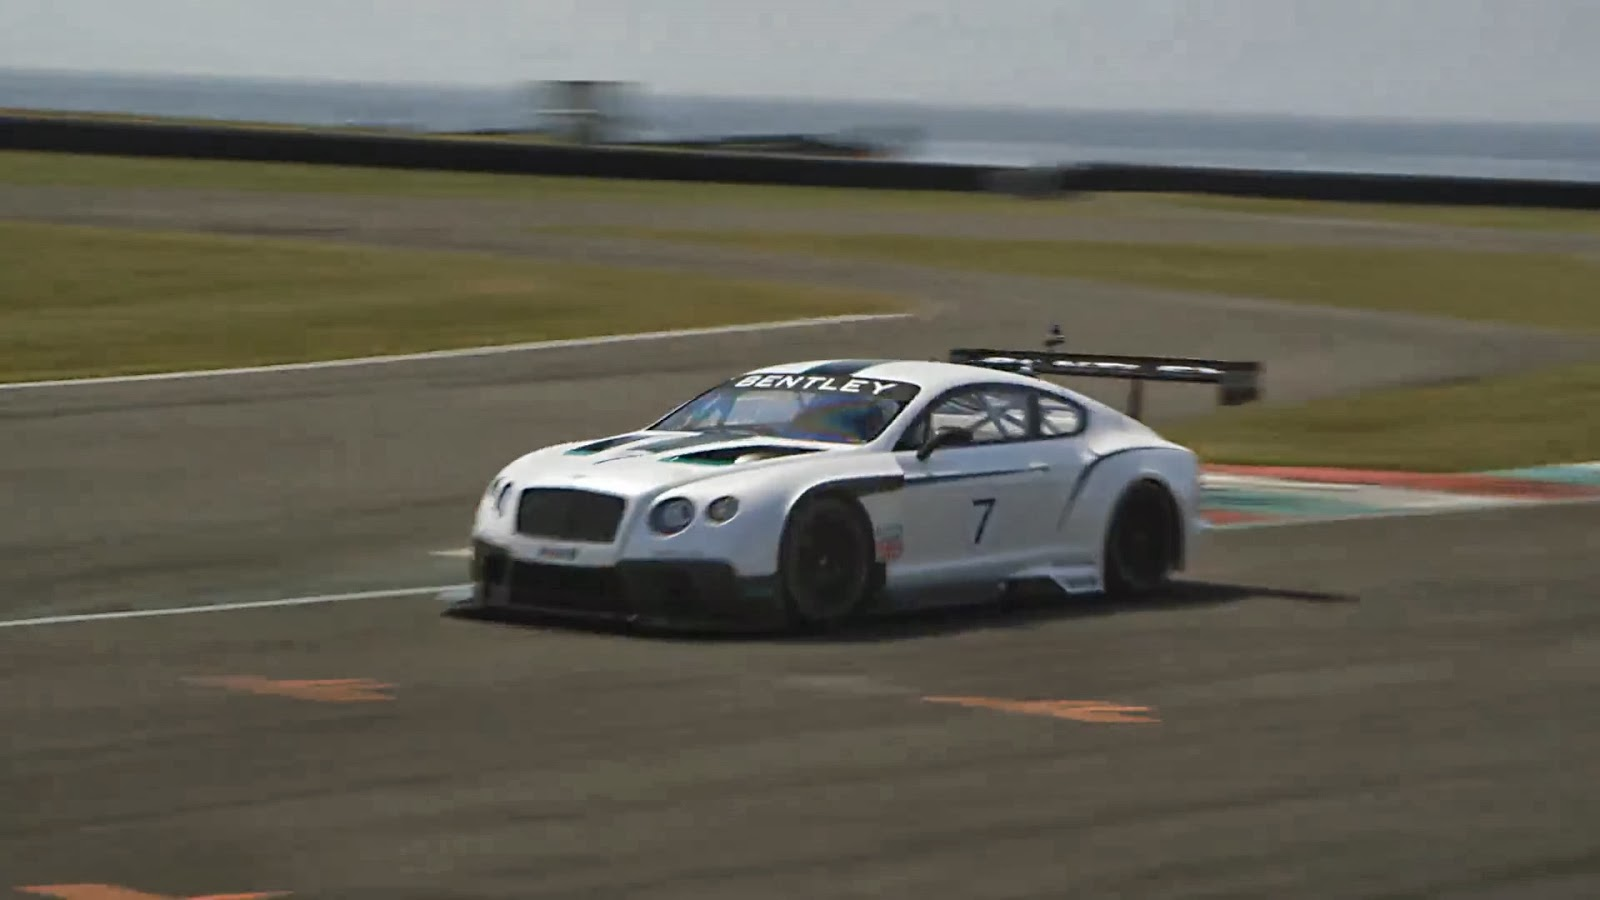 2014 Bentley Continental GT3 Racecar - Review and Design   Auto ...